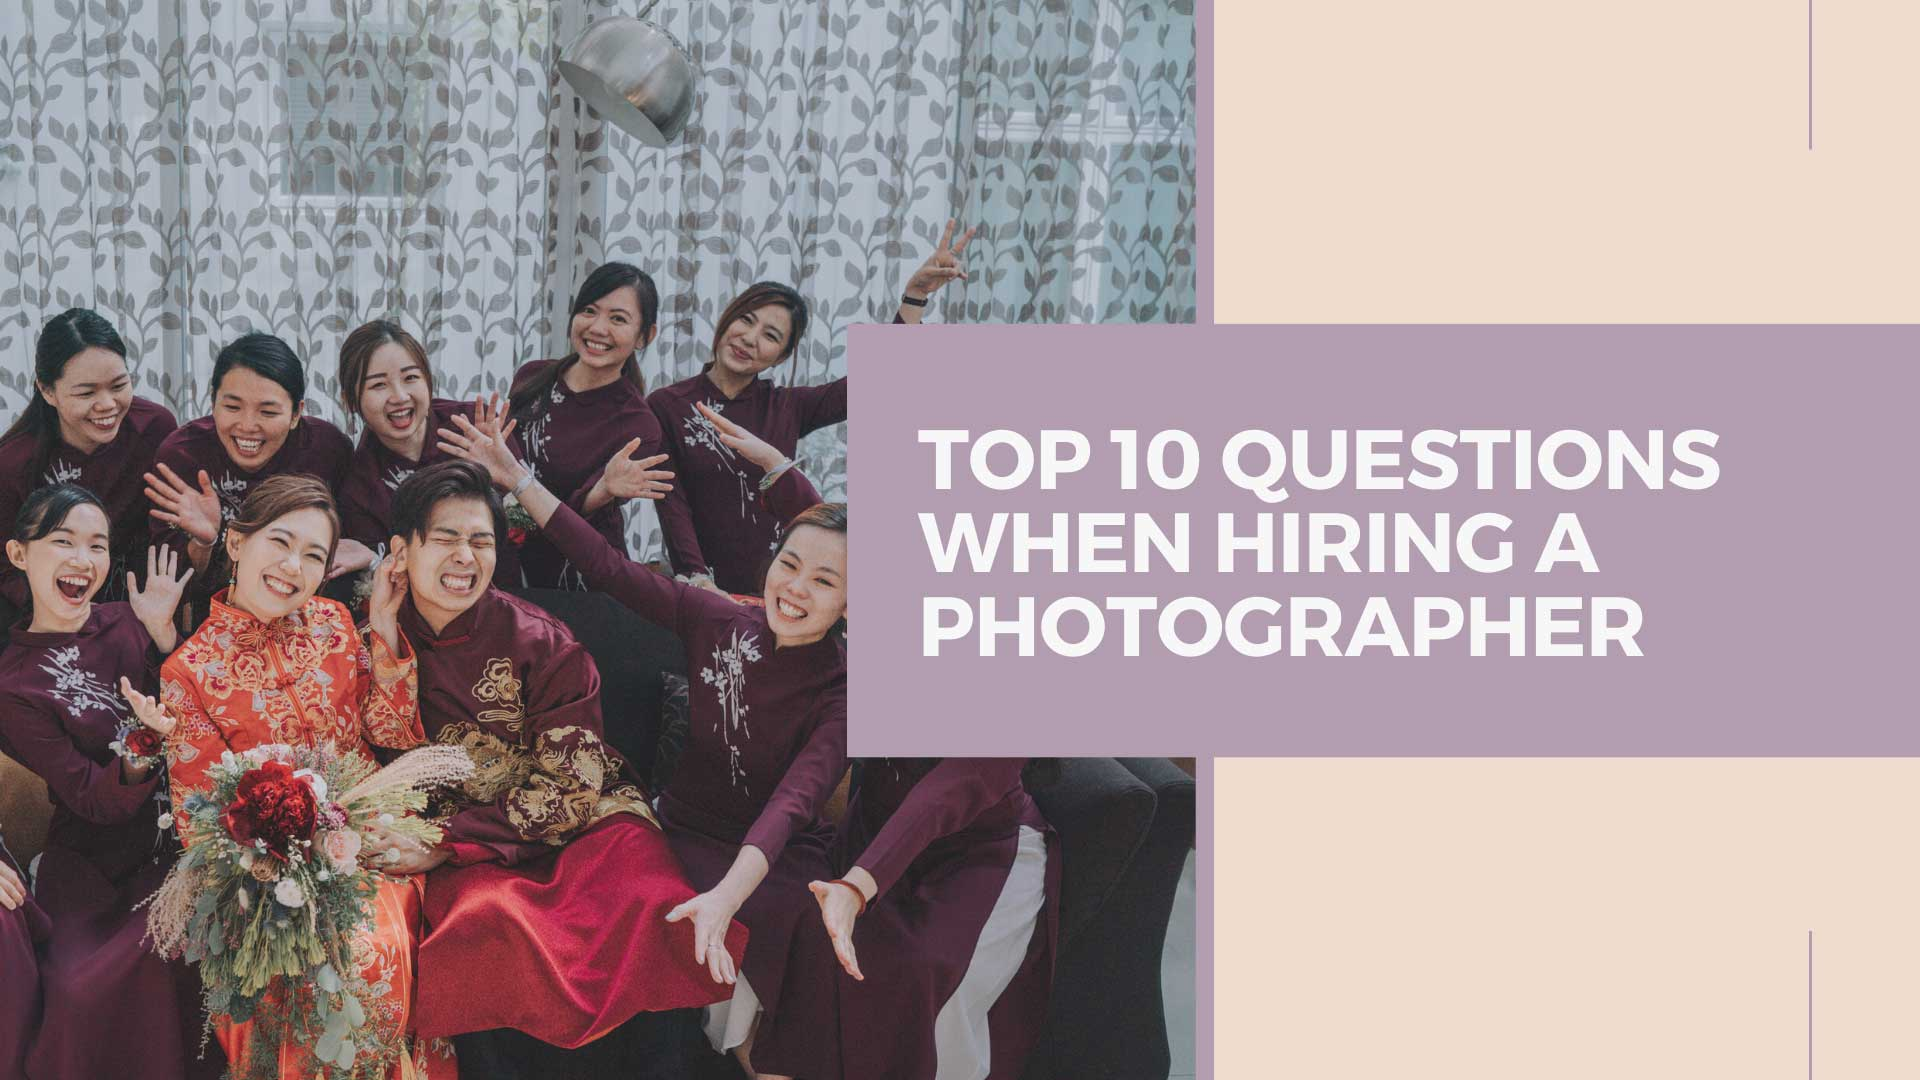 Top 10 Questions When Hiring A Photographer